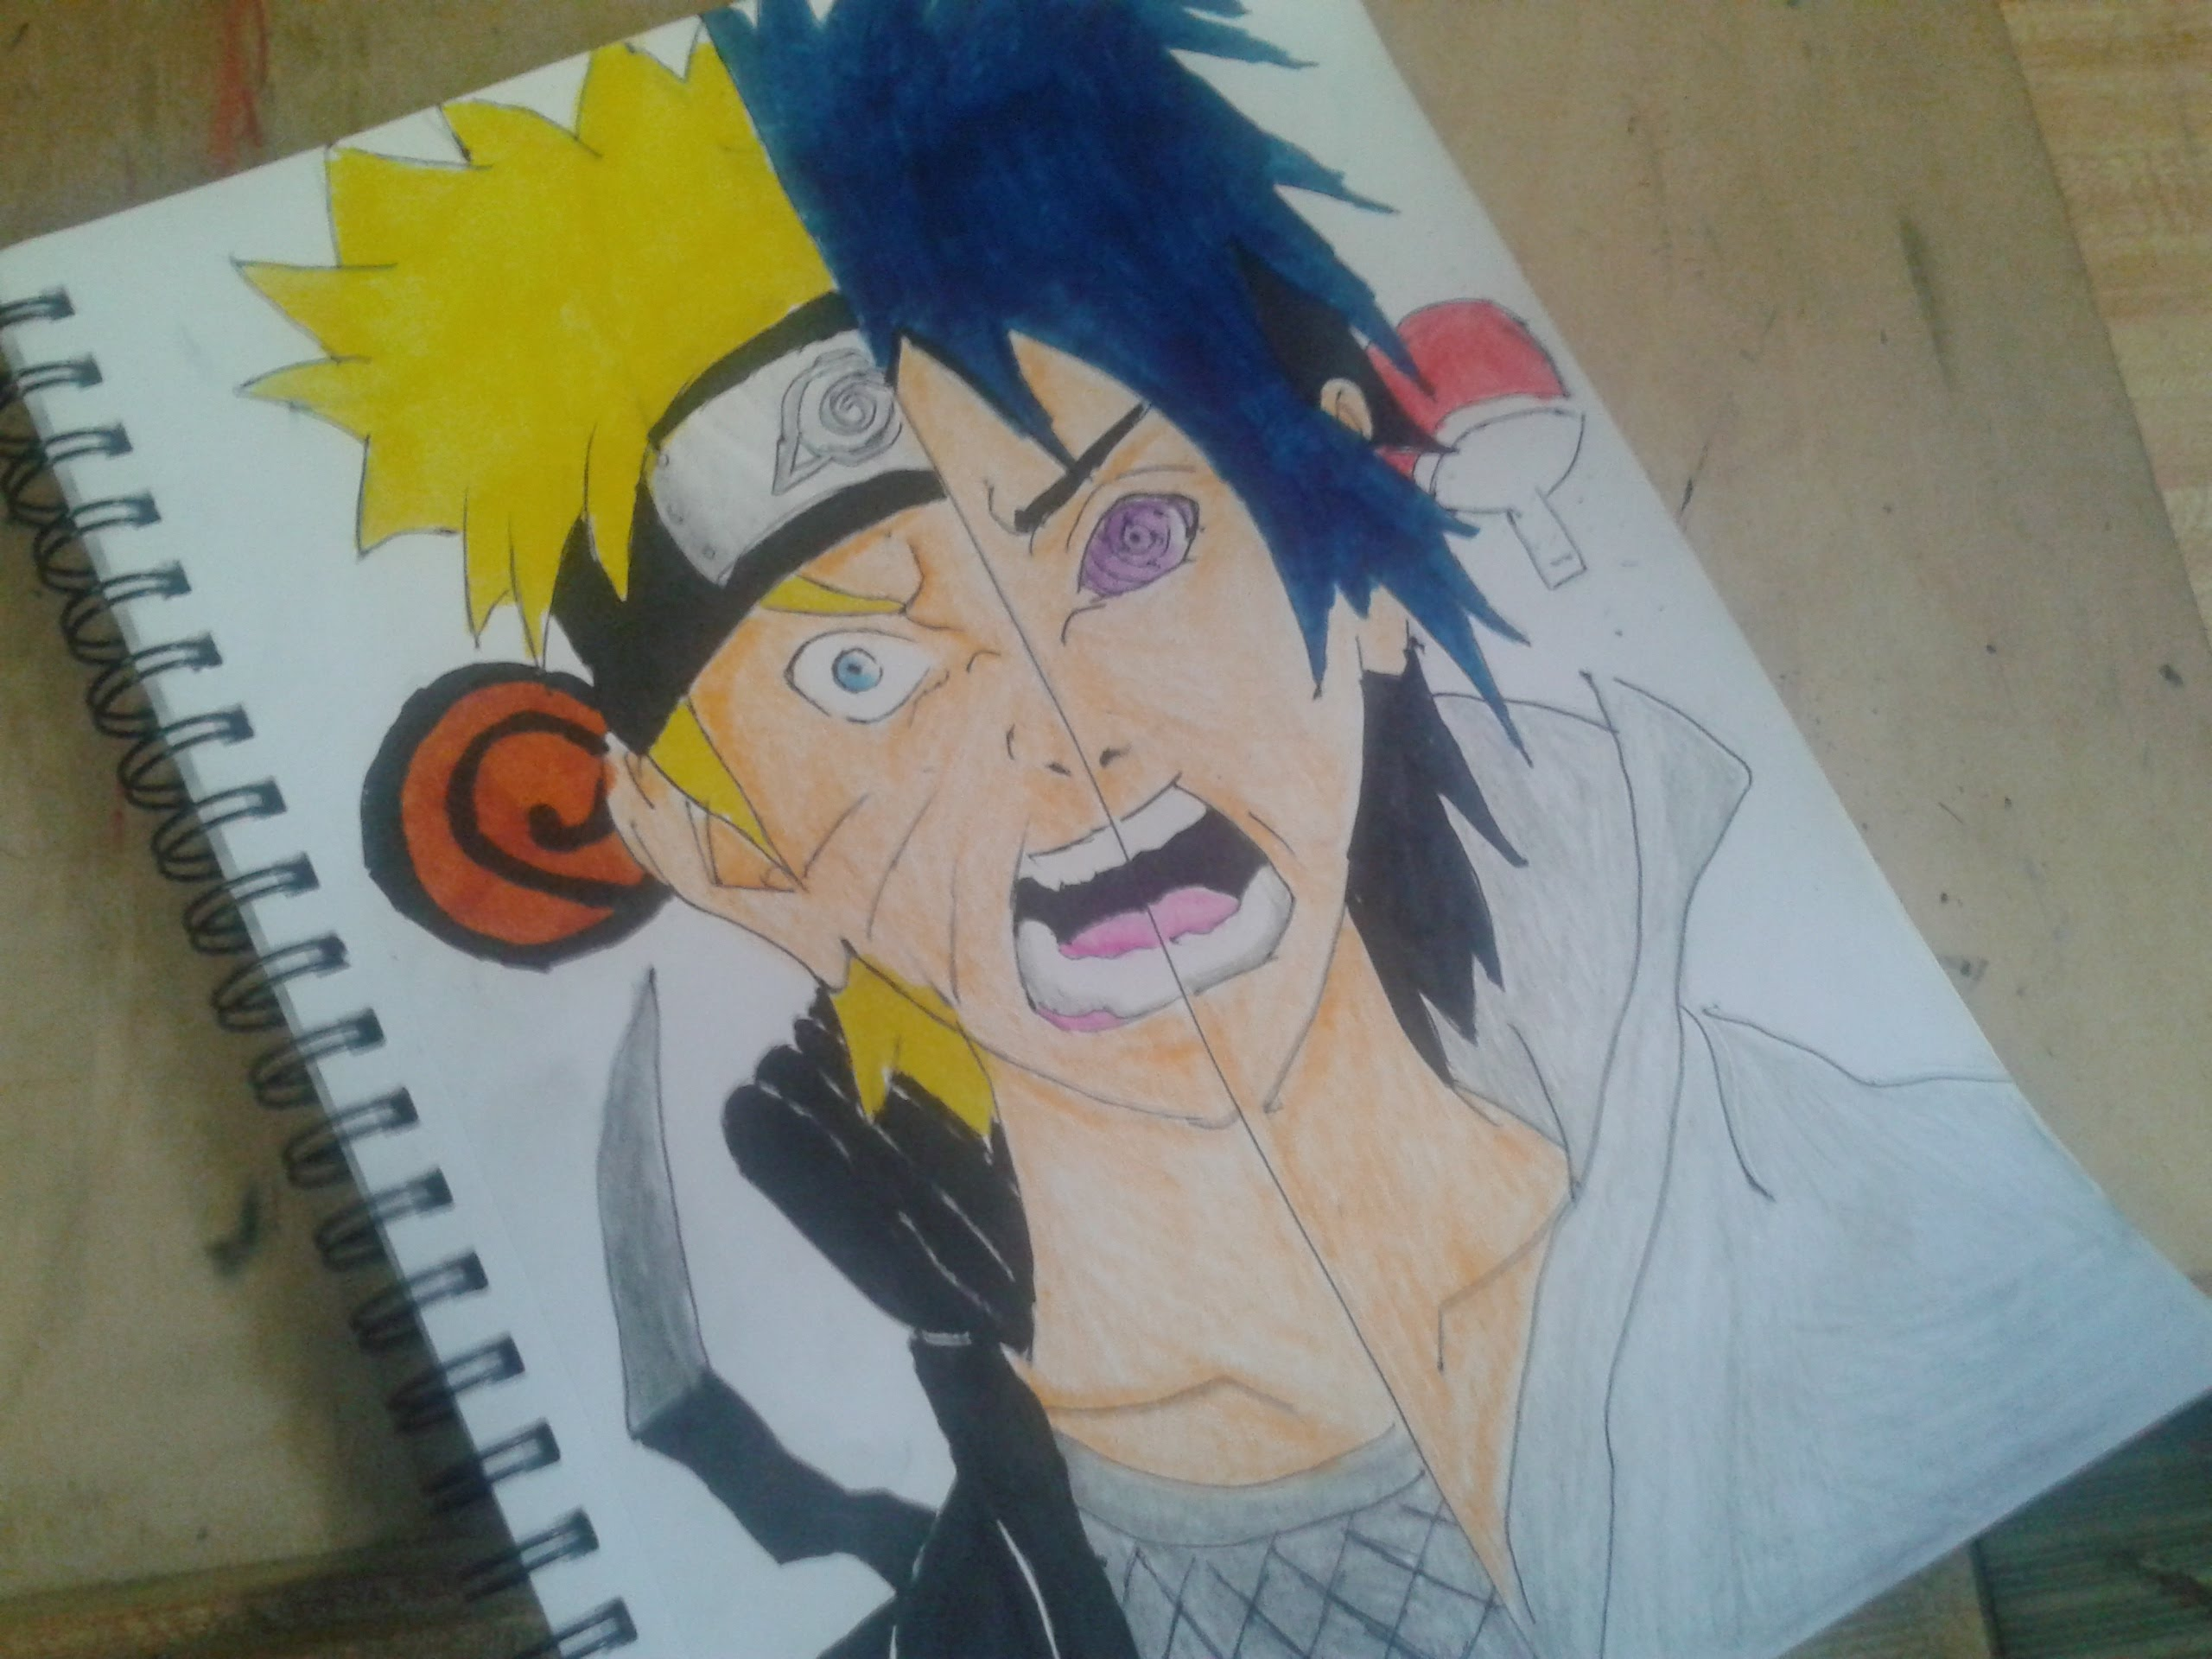 2560x1920 Naruto Uzumaki And Sasuke Uchiha Speed Drawing